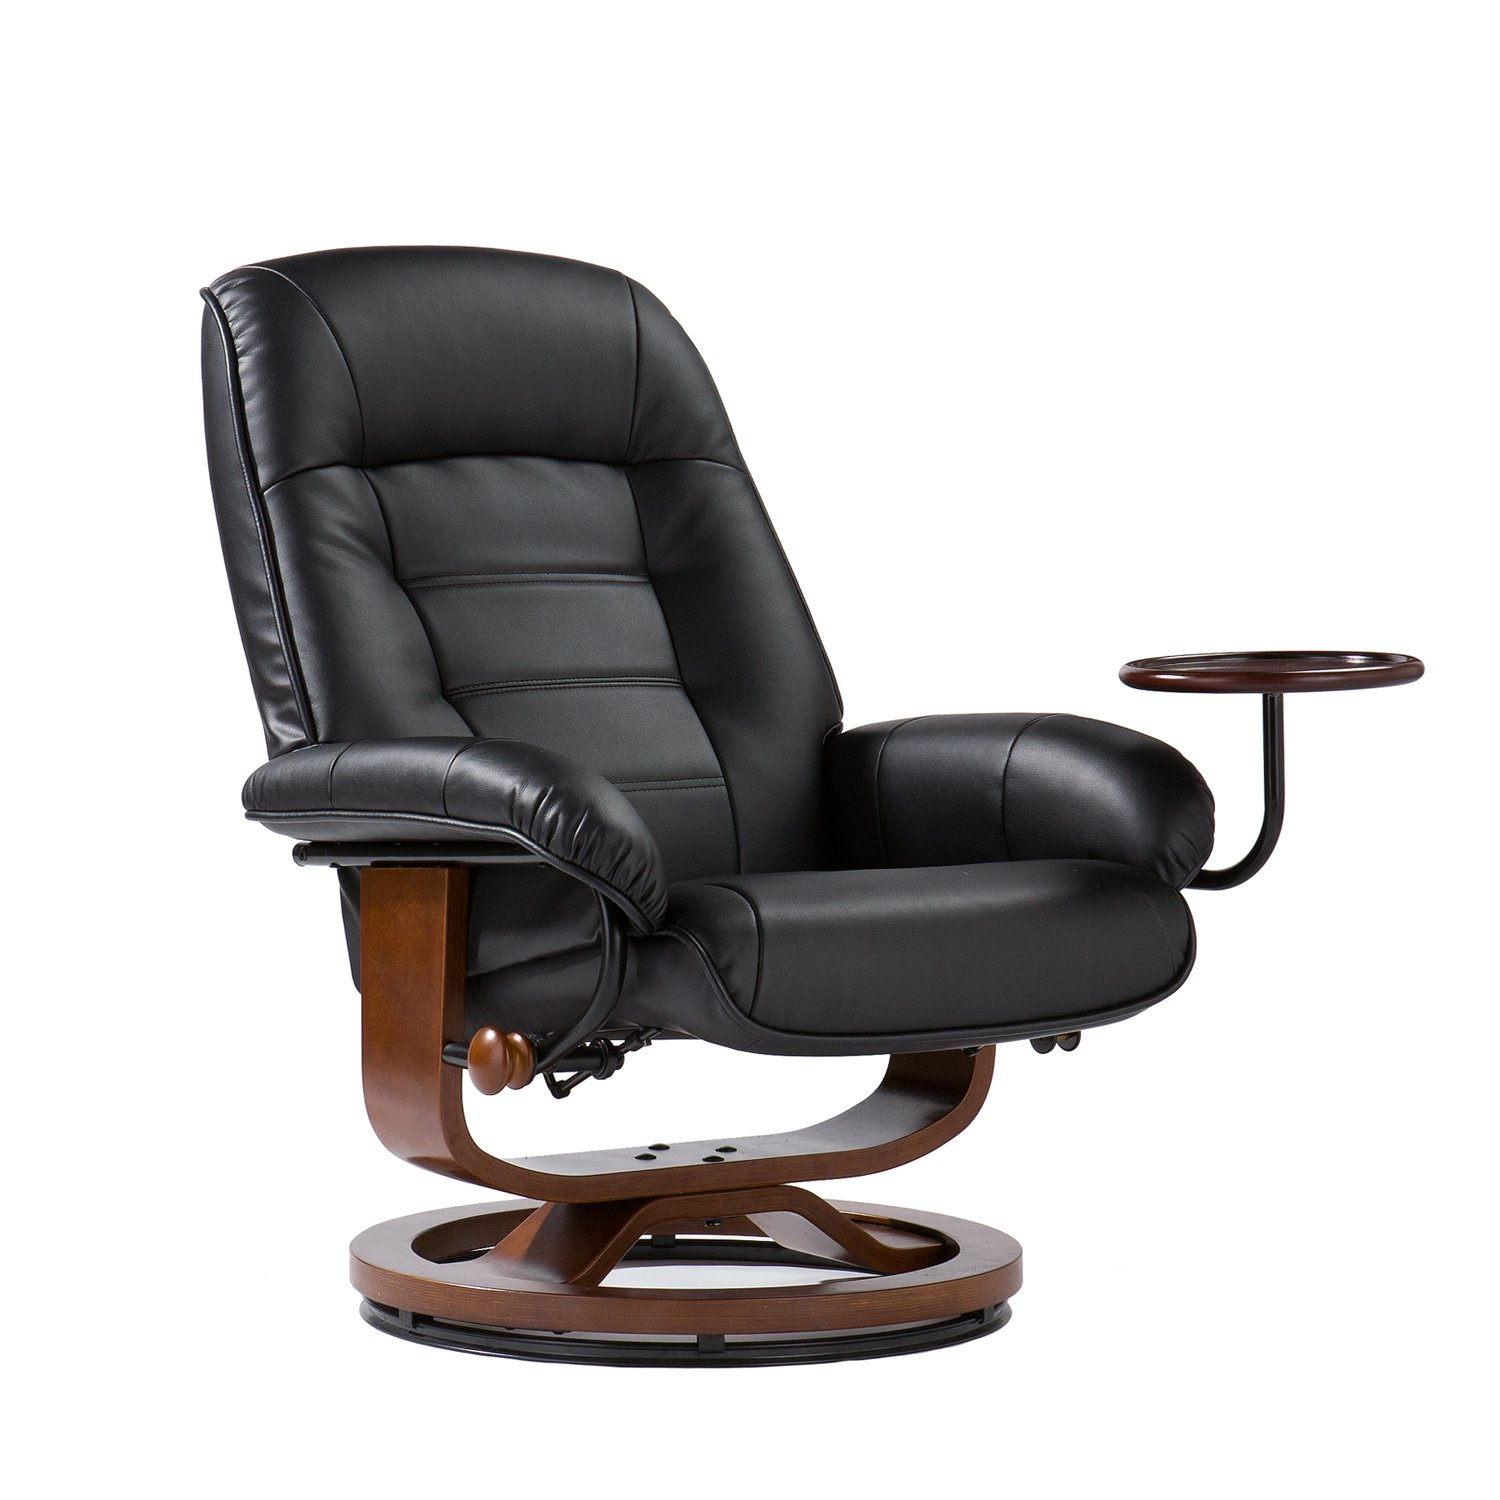 office recliners. amazoncom adjustable black leather recliner and ottoman office chair kitchen u0026 dining recliners